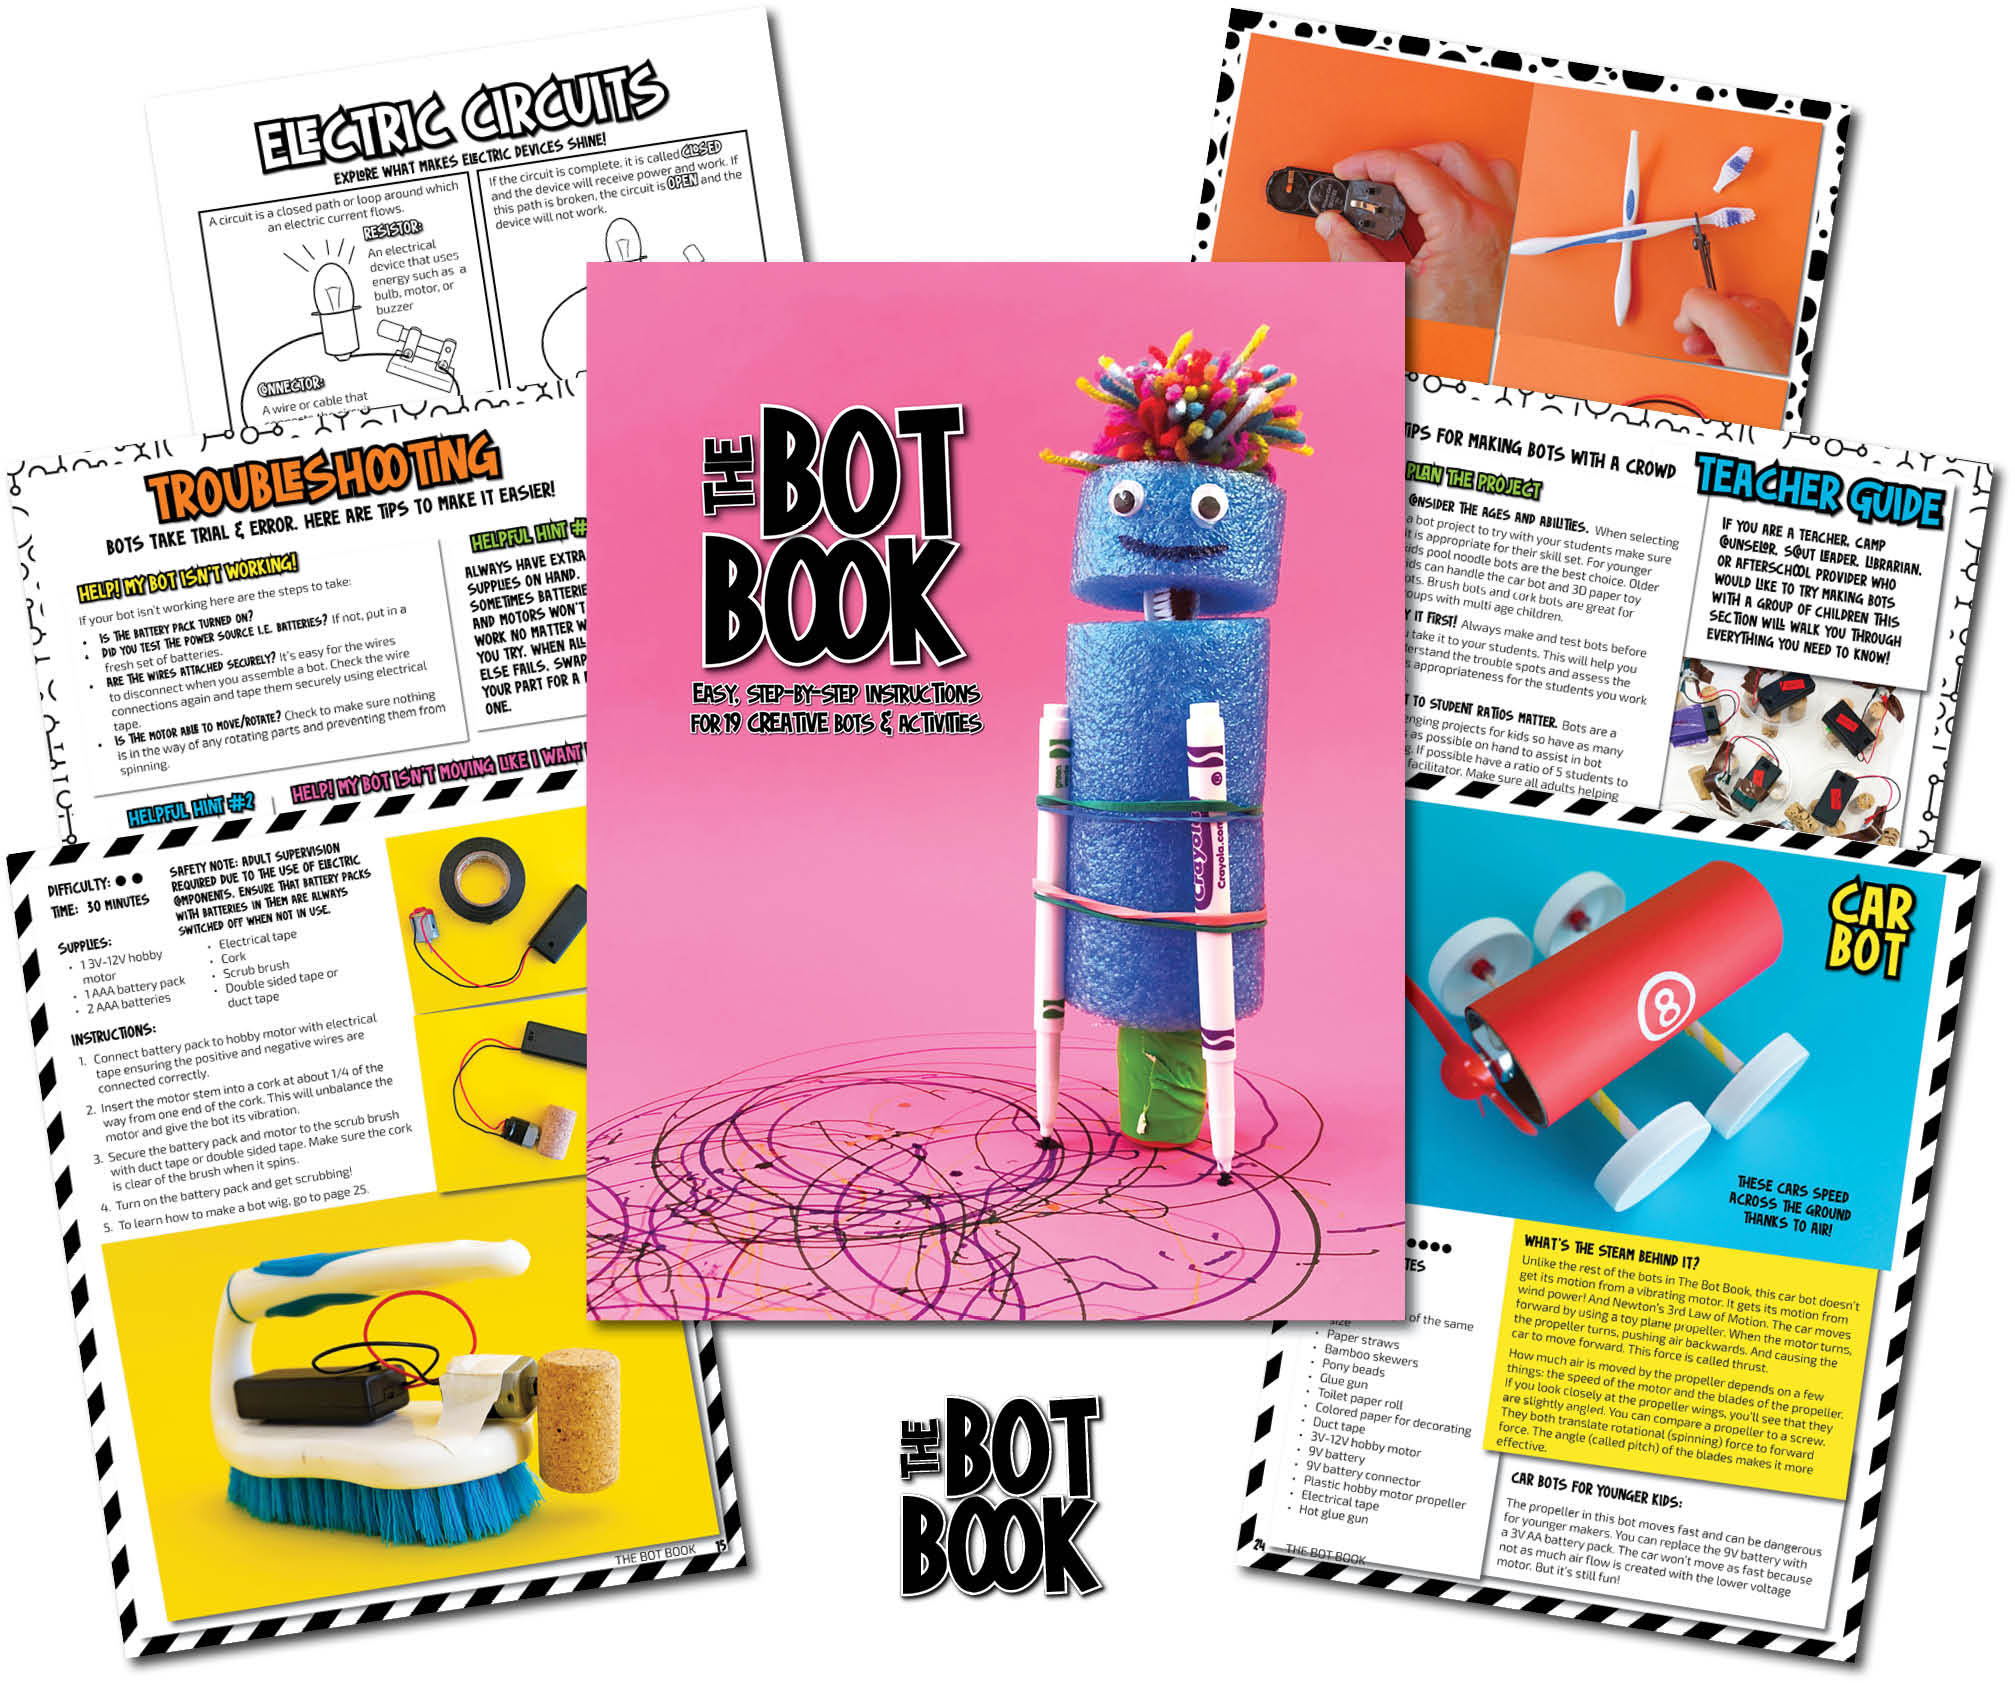 What's Inside Bot Book Image Only